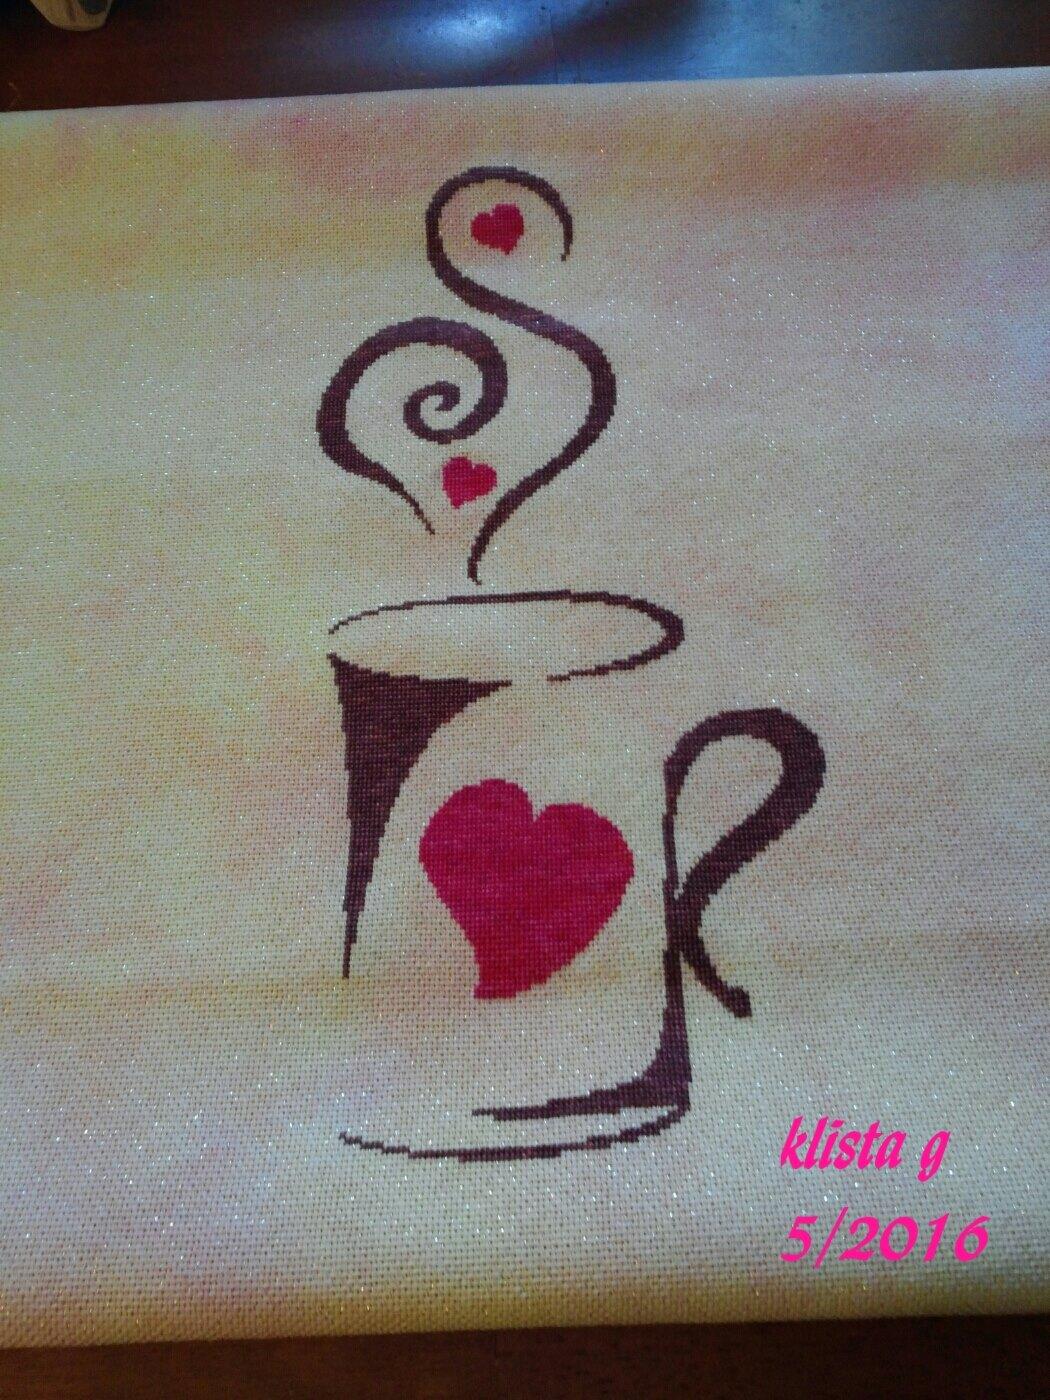 Gallery Cup Of Hearts